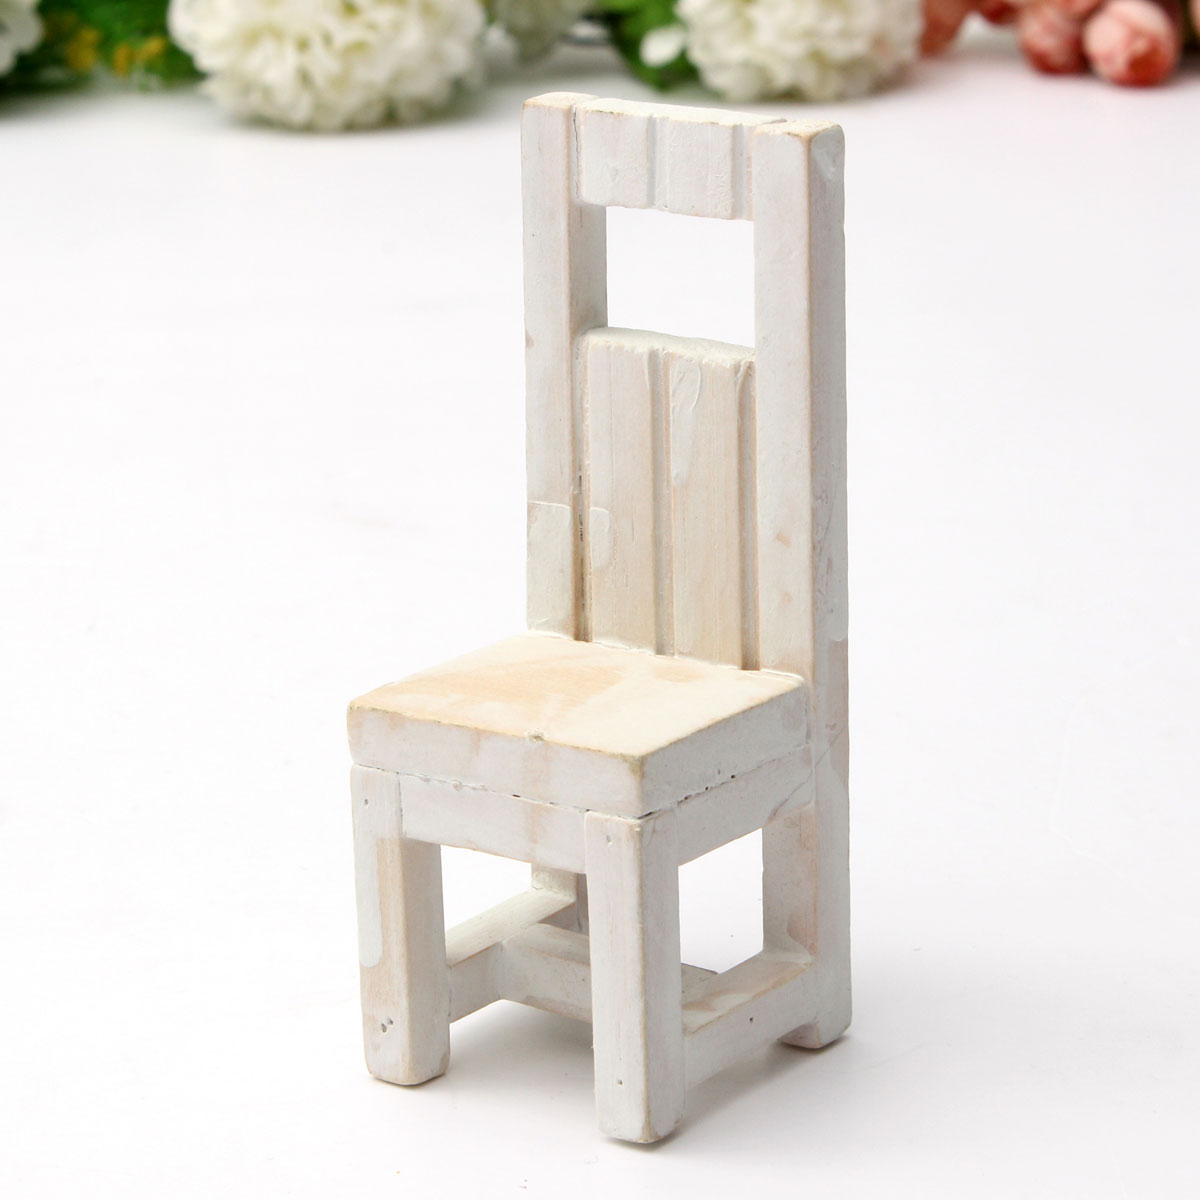 Marvelous photograph of Mini Fairy Garden Wooden Chair Wedding Cake Model DollHouse Grocery  with #27370A color and 1200x1200 pixels